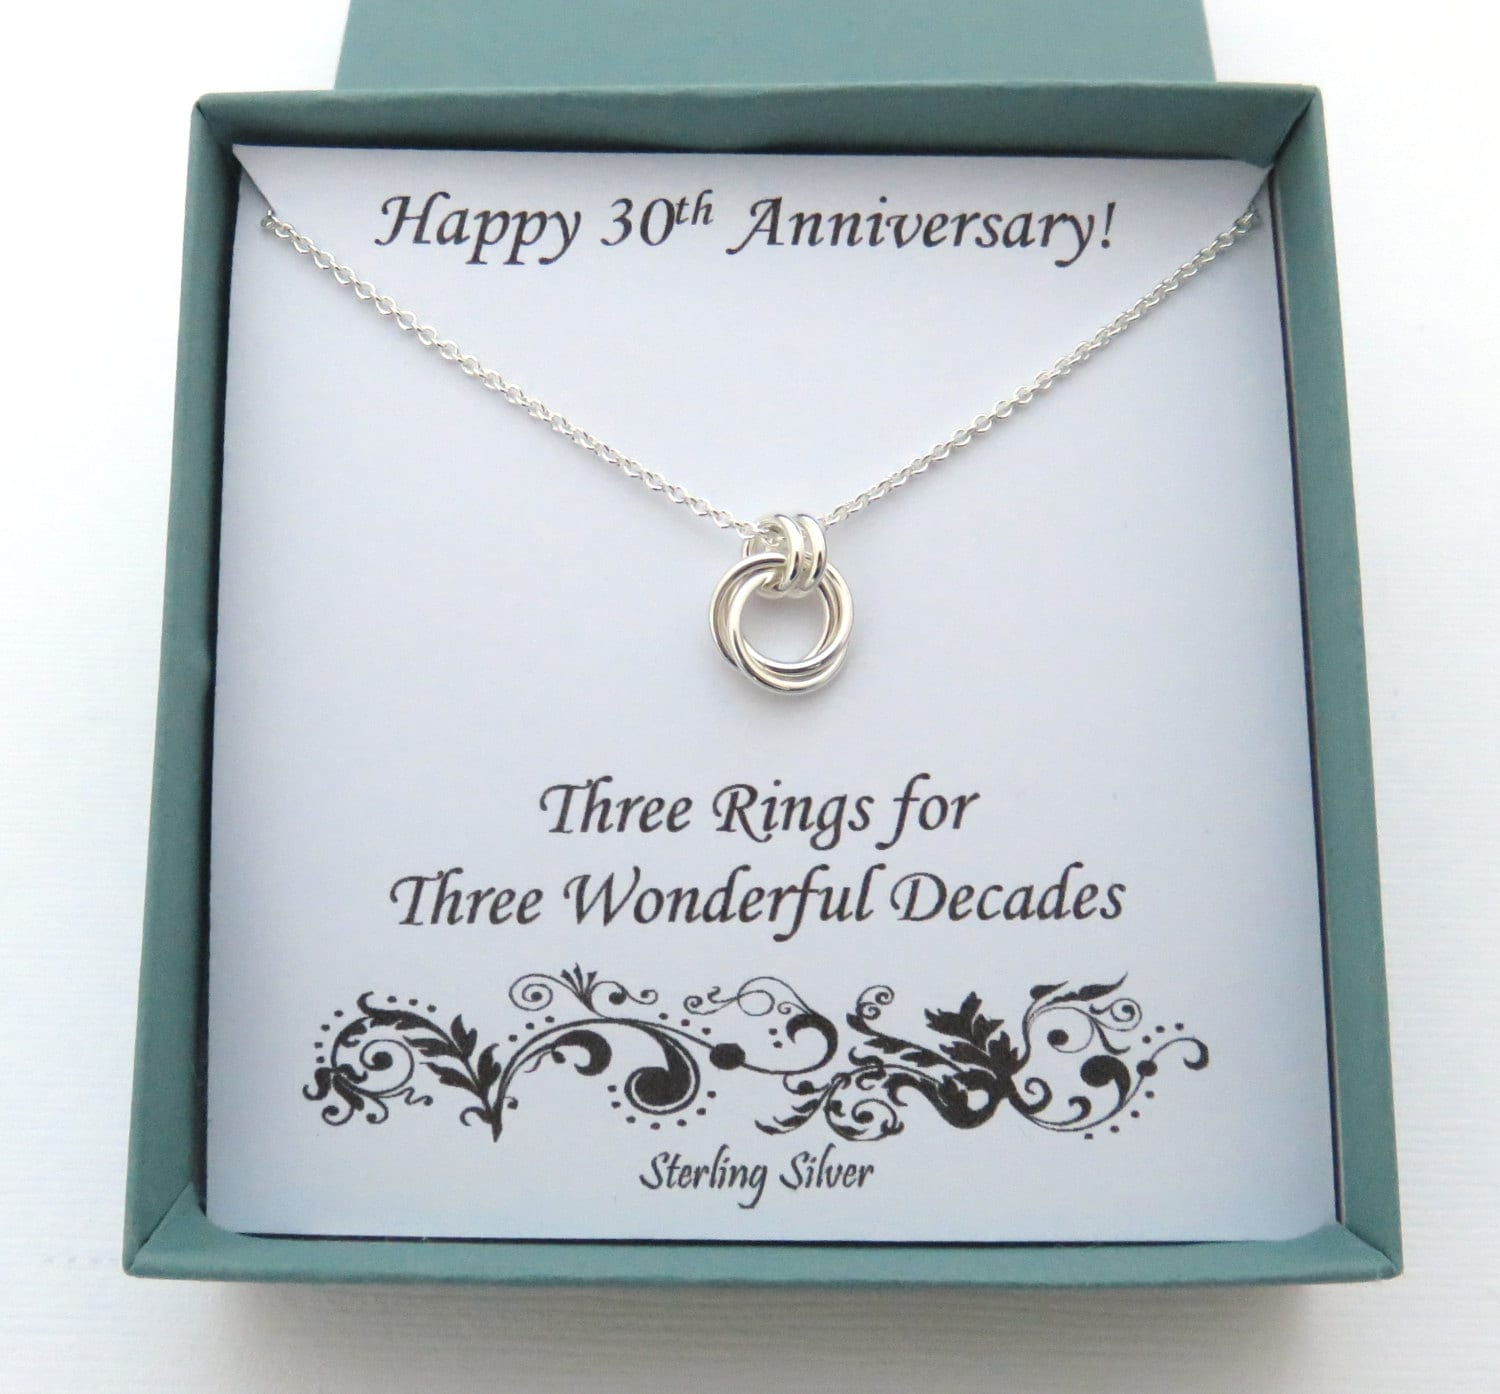 What Is The 30th Wedding Anniversary Gift: 30th Anniversary Gift Job Anniversary 30 Years Job 30 Years